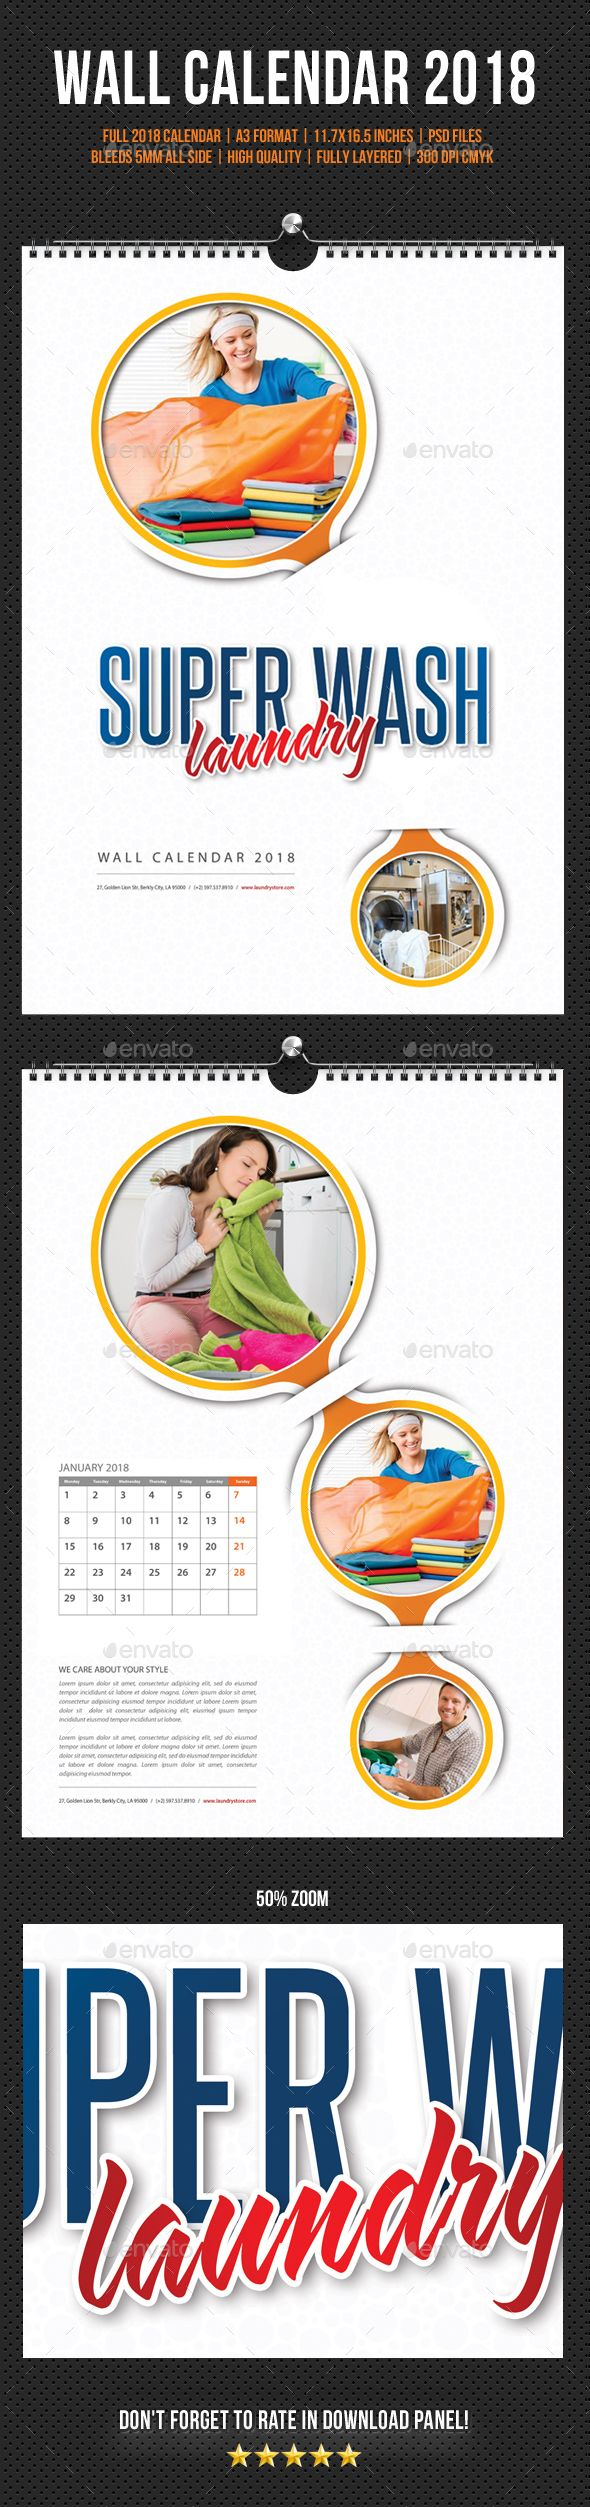 Laundry Services Wall Calendar 2018